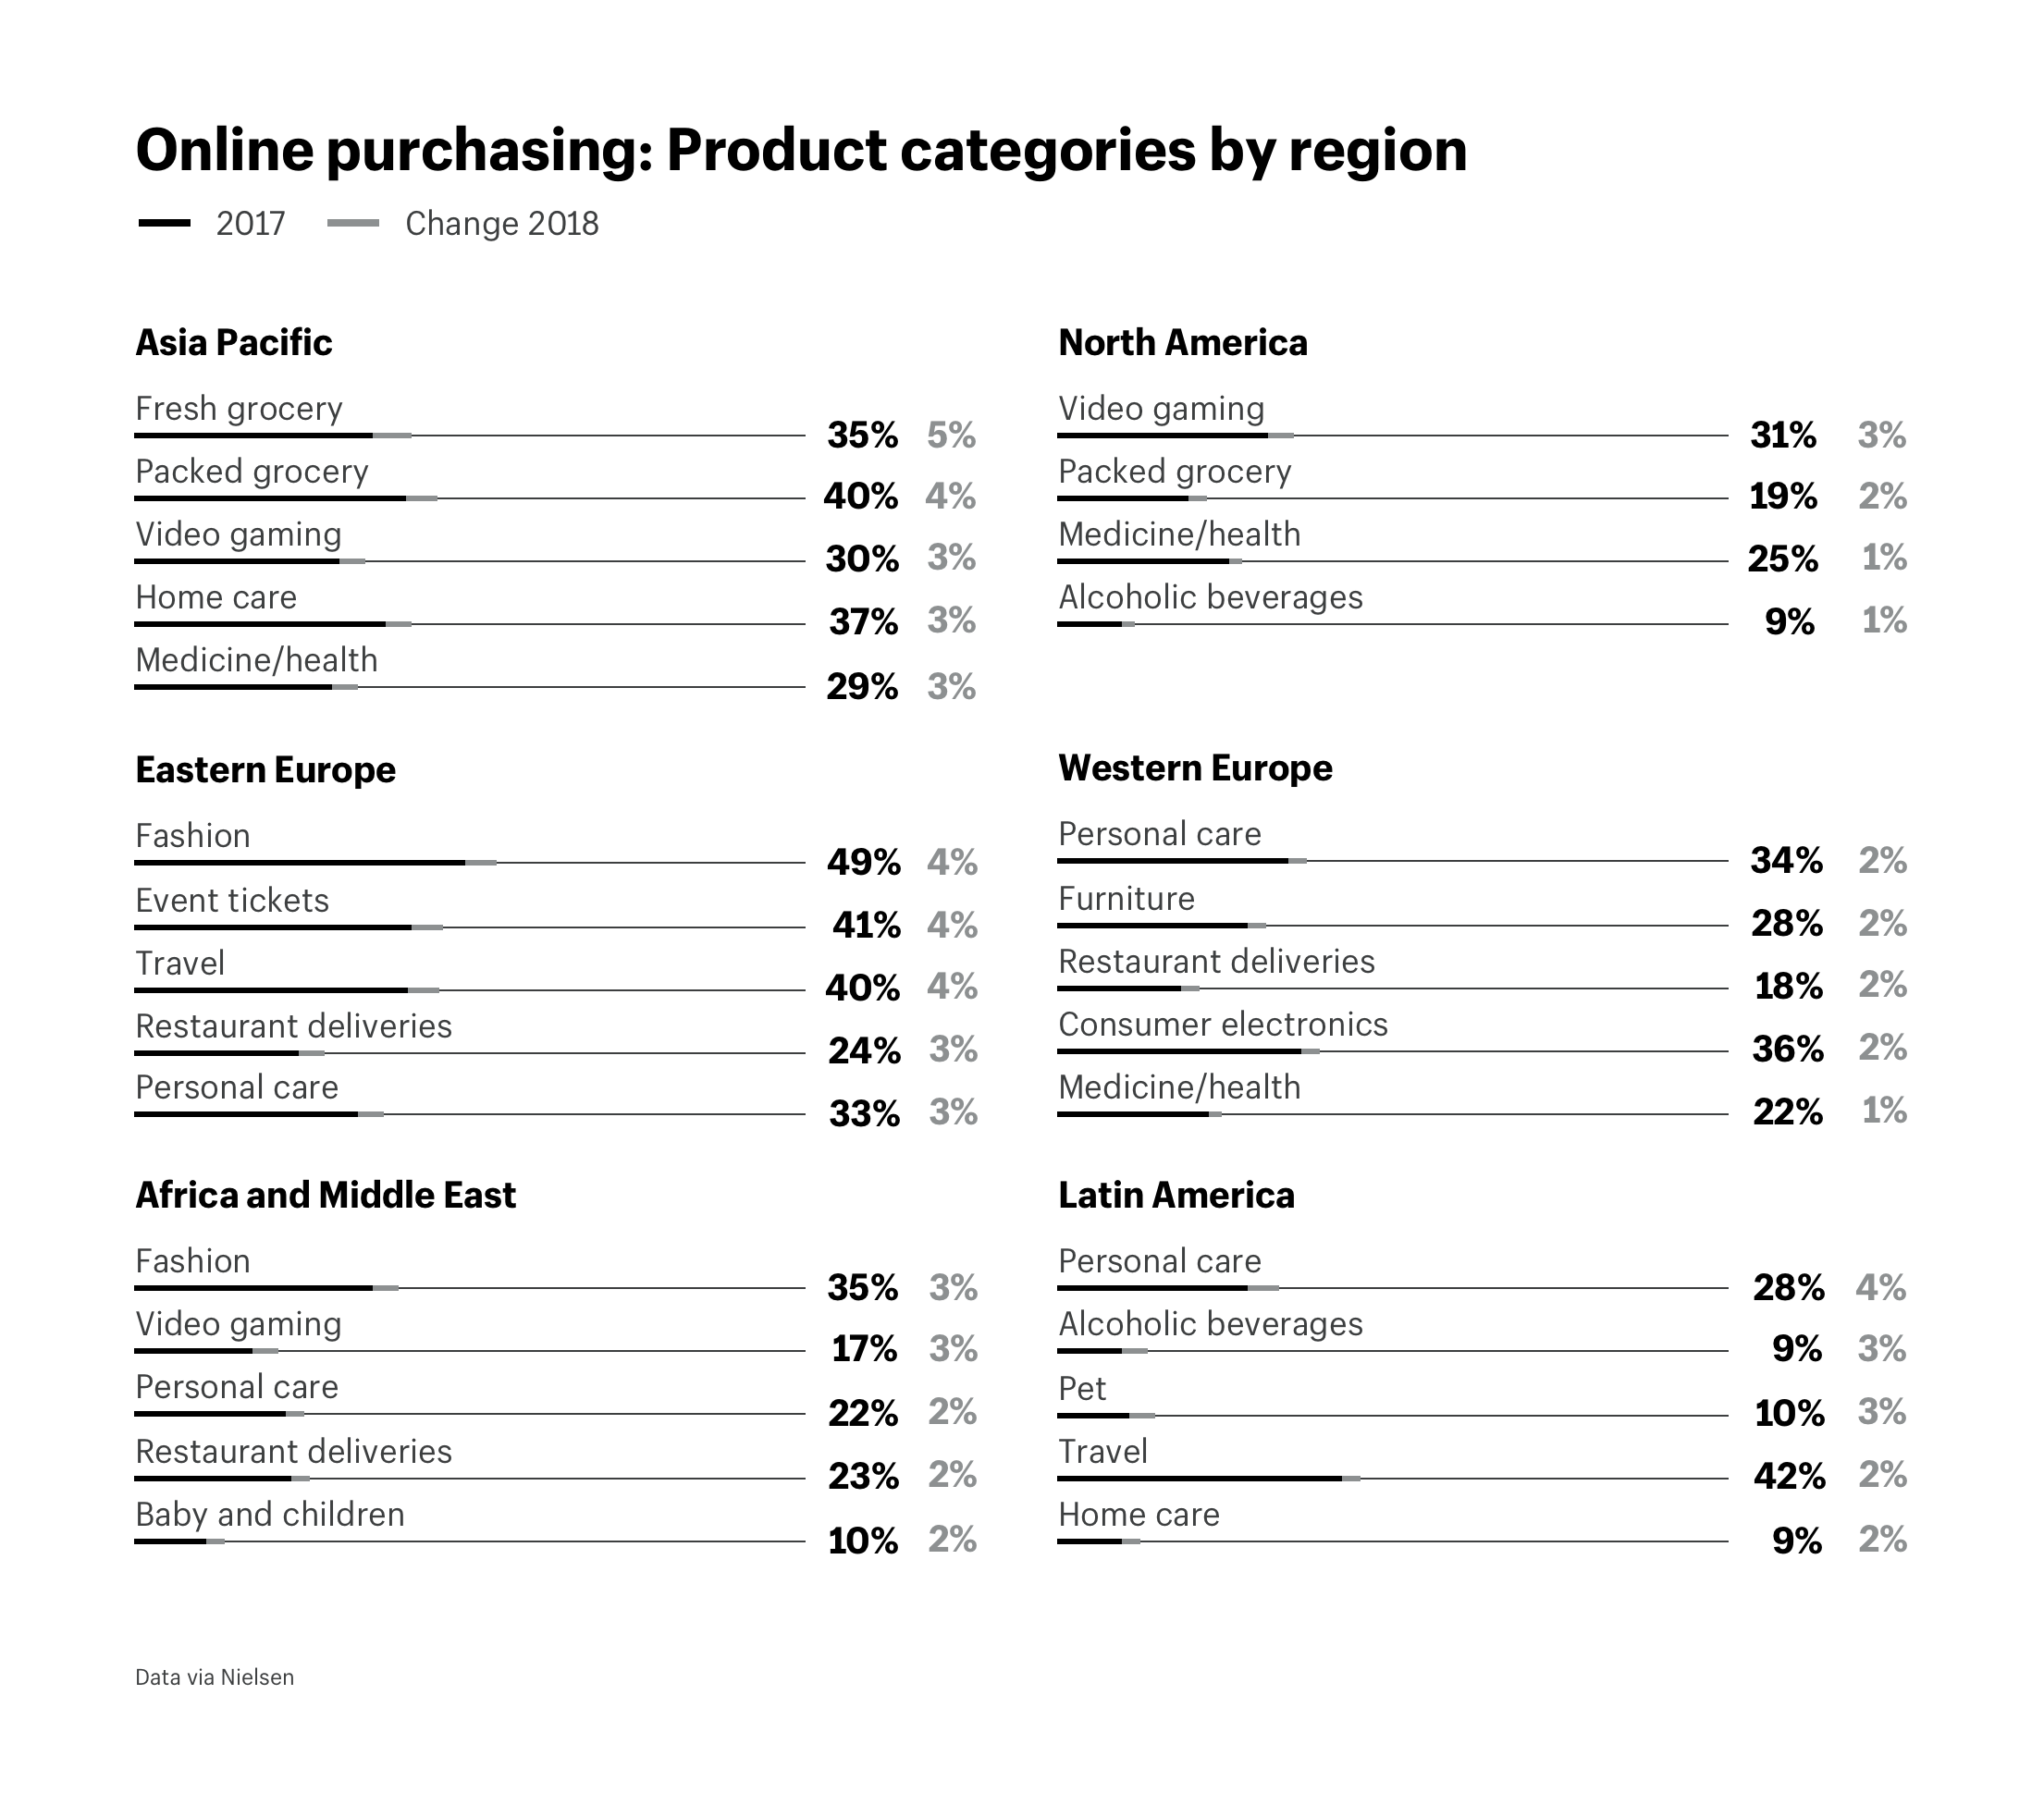 Online purchasing: Product categories by region